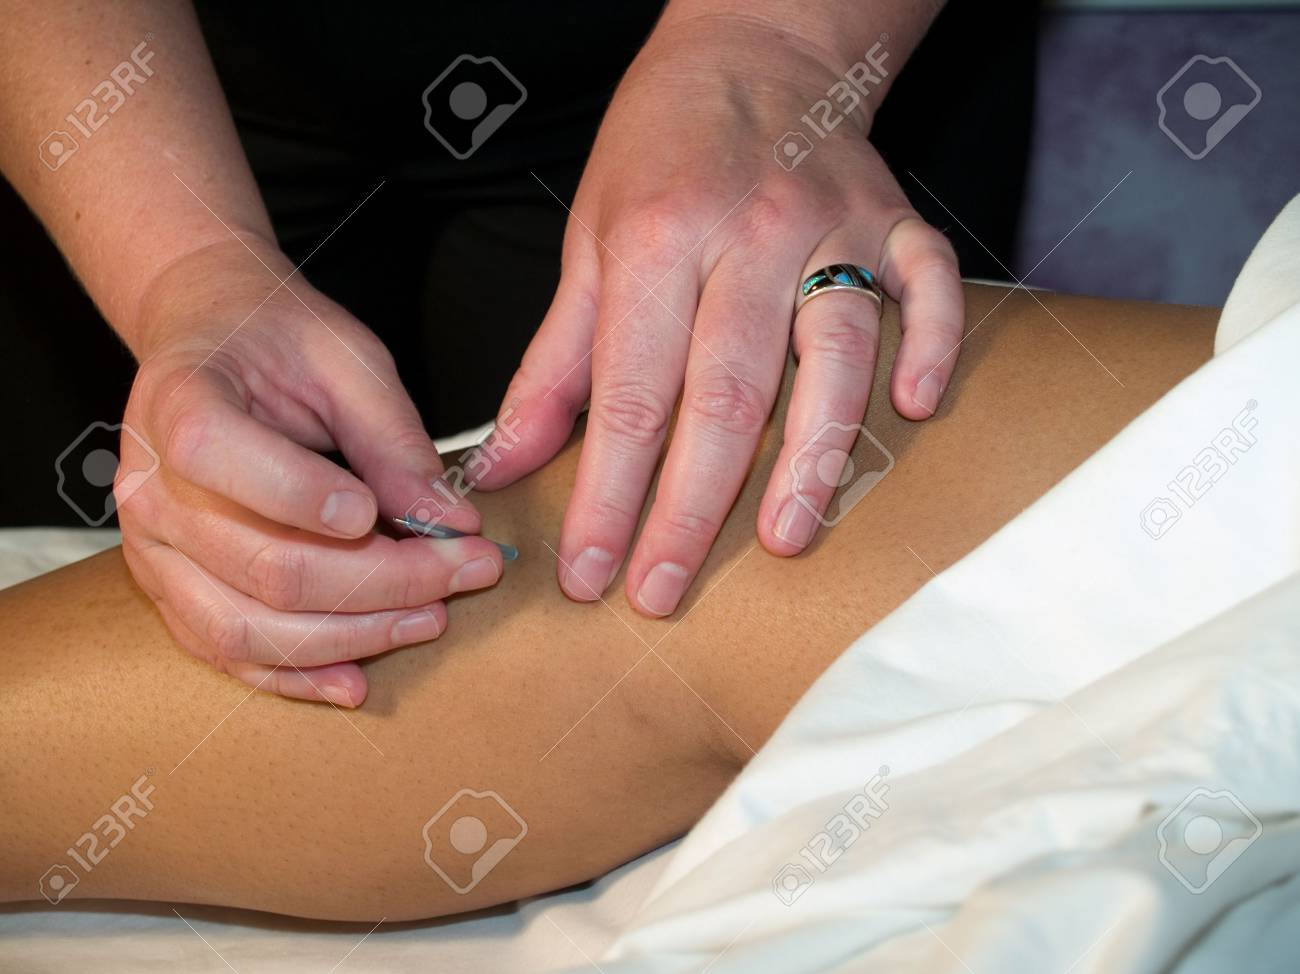 The Eastern or Asian acupuncture medical treatment said to prevent or treat a variety of medical ailments, including pain. Stock Photo - 3741097